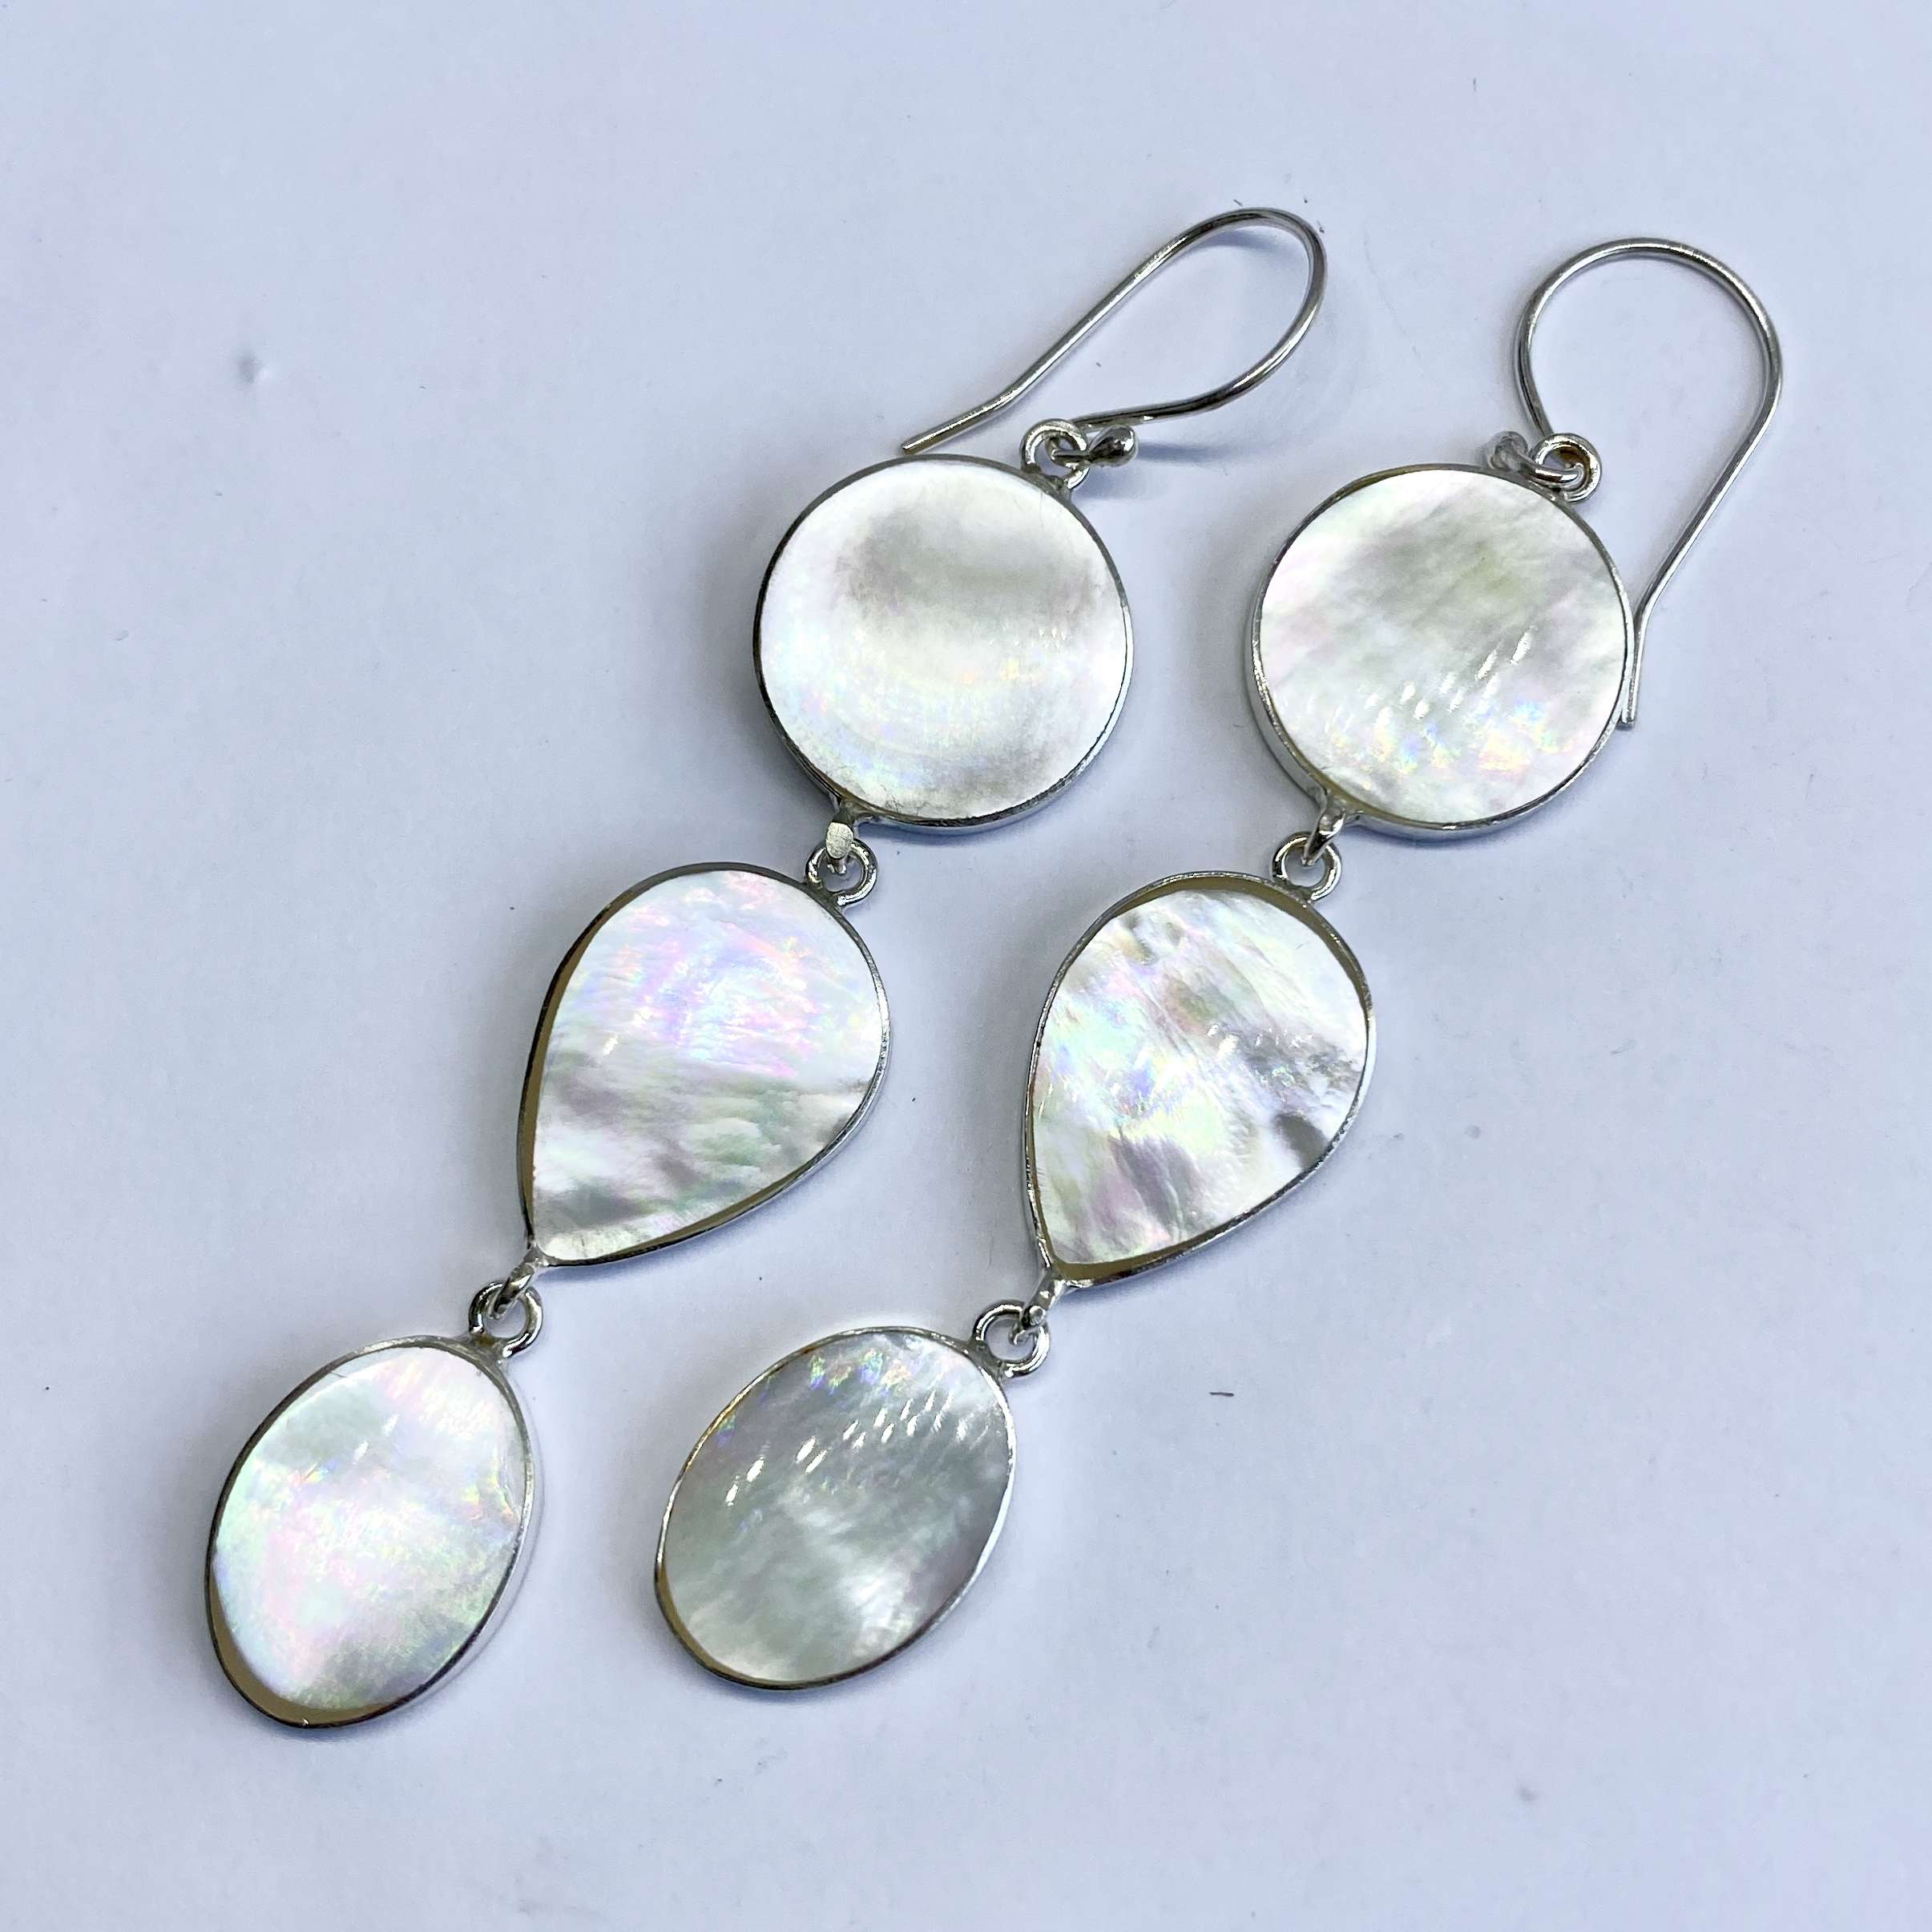 (BALI 925 STERLING SILVER DANGLE EARRINGS WITH MOTHER OF PEARL)